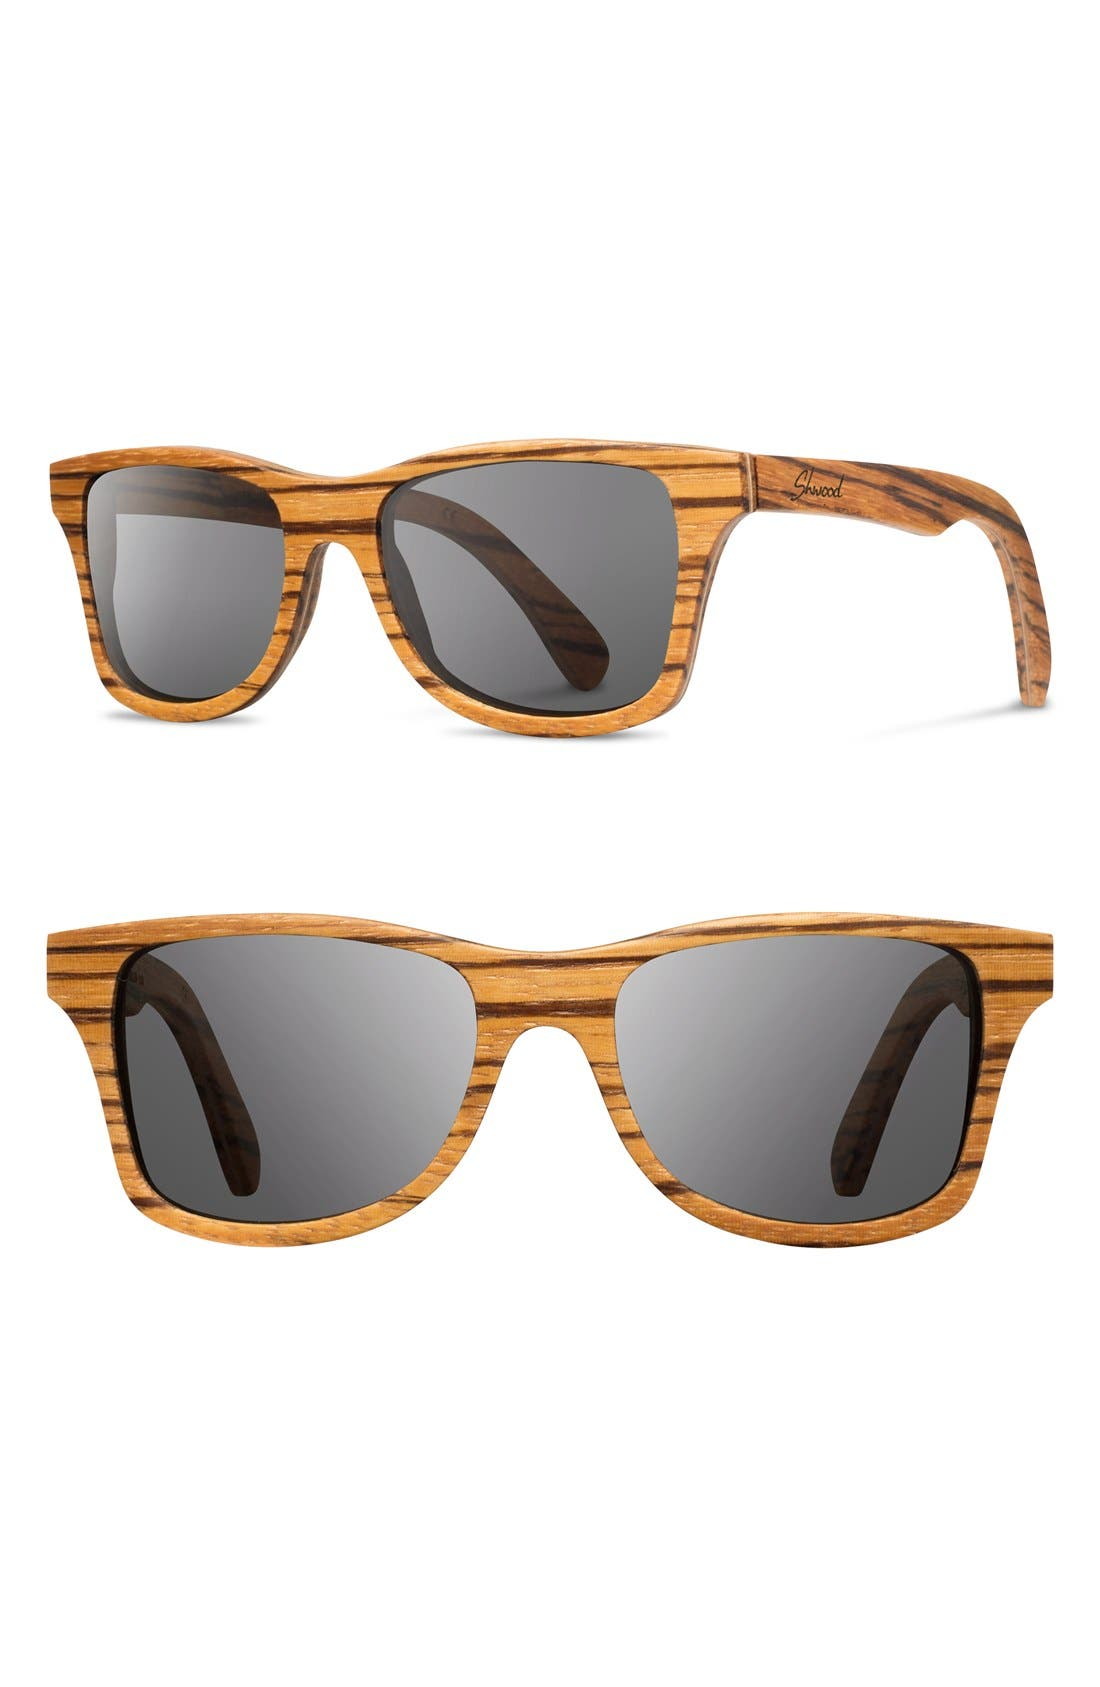 SHWOOD Canby 54mm Polarized Wood Sunglasses